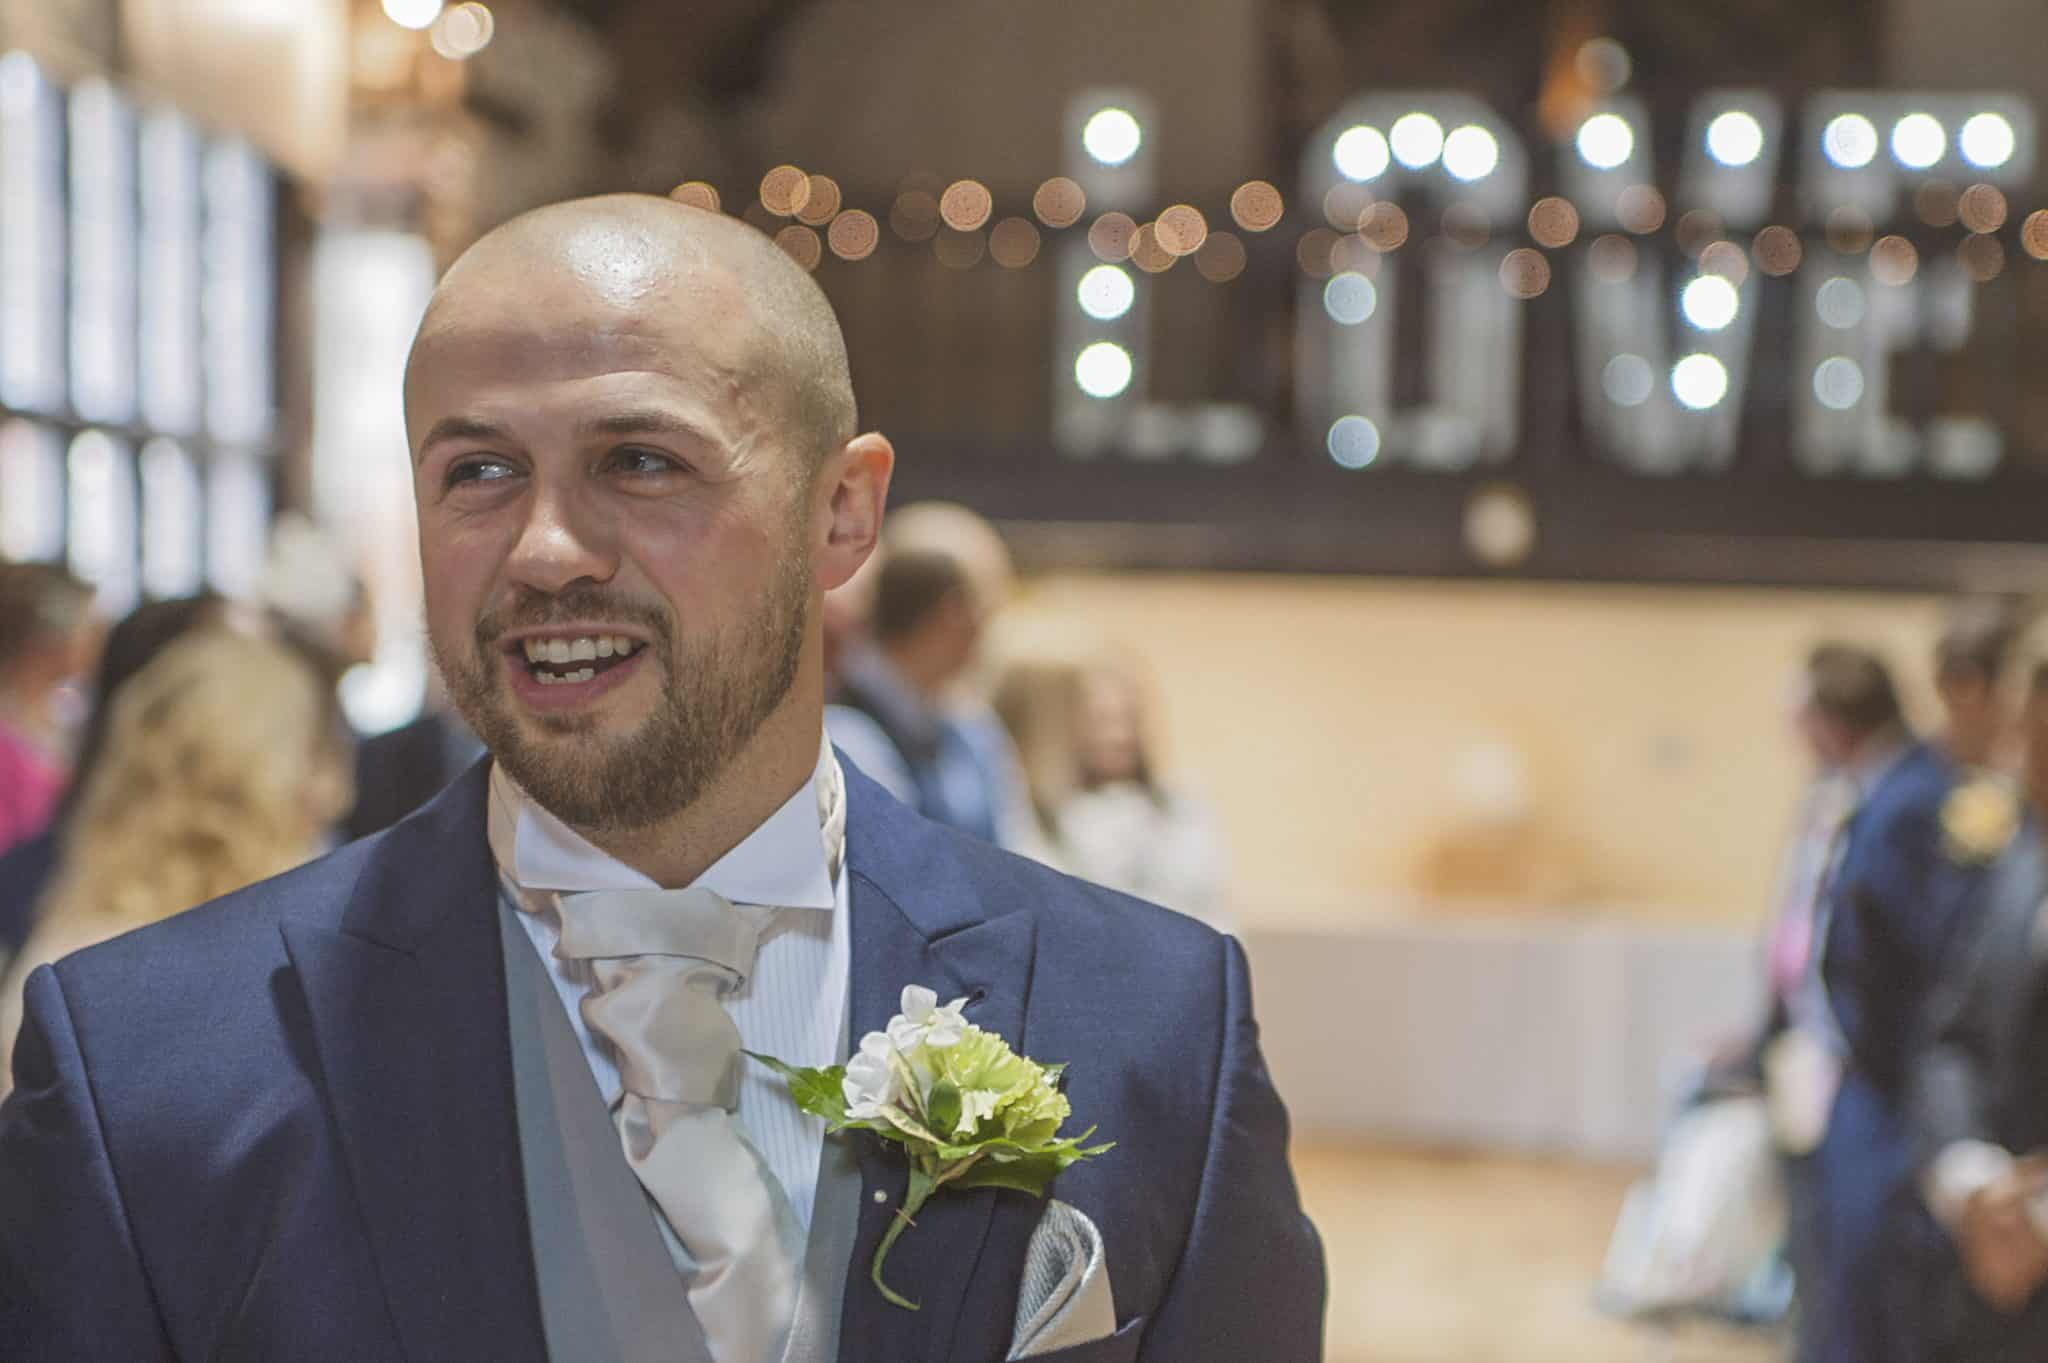 Groom stood at end of wedding aisle smiling